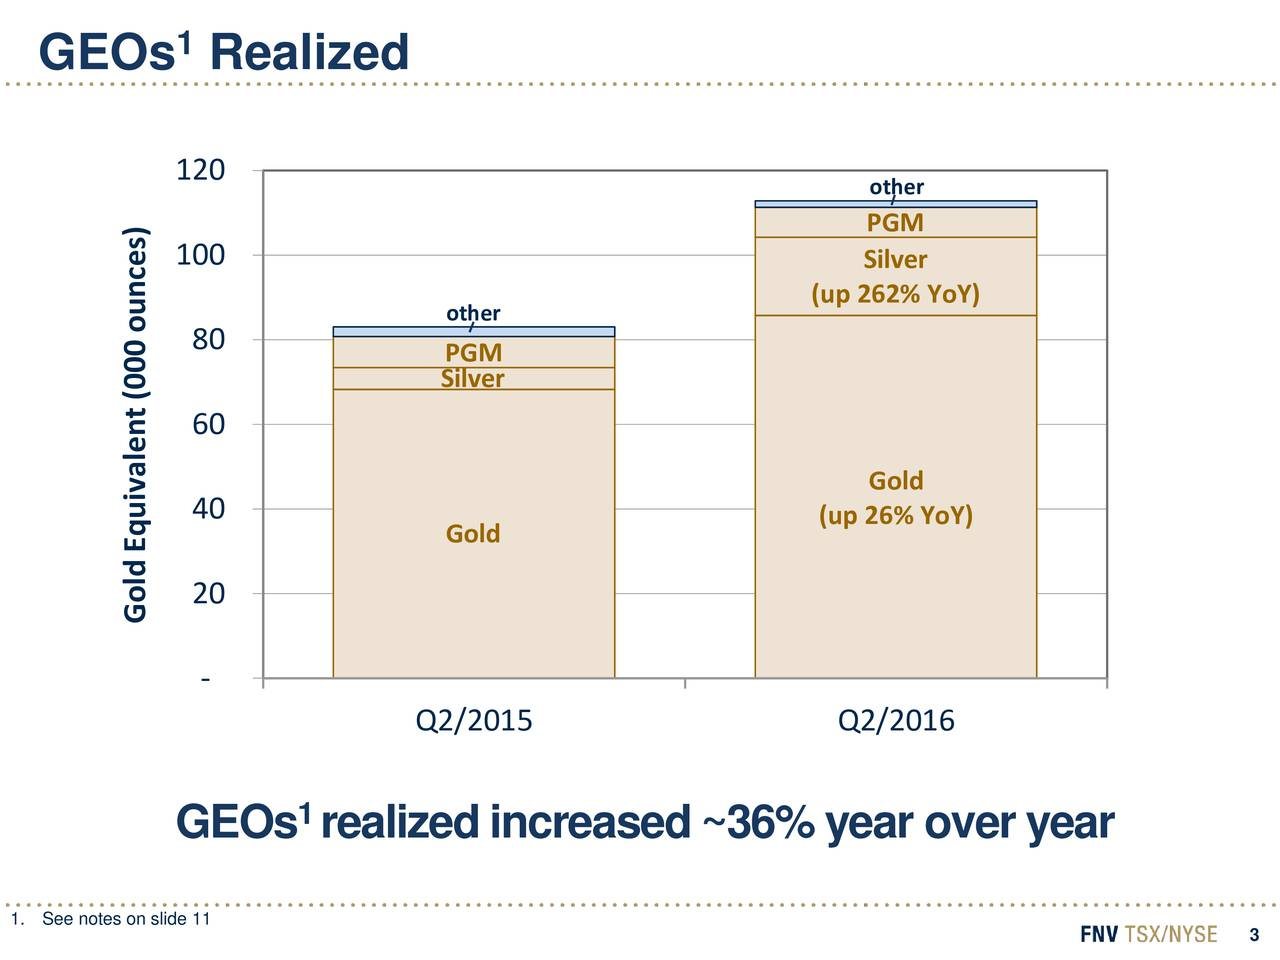 120 other PGM 100 Silver (up 262% YoY) other 80 PGM Silver 60 Gold 40 (up 26% YoY) Gold Gold Equivalent (000 ounces) - Q2/2015 Q2/2016 1 GEOs realizedincreased~36%year overyear 1.See notes on slide 11 3